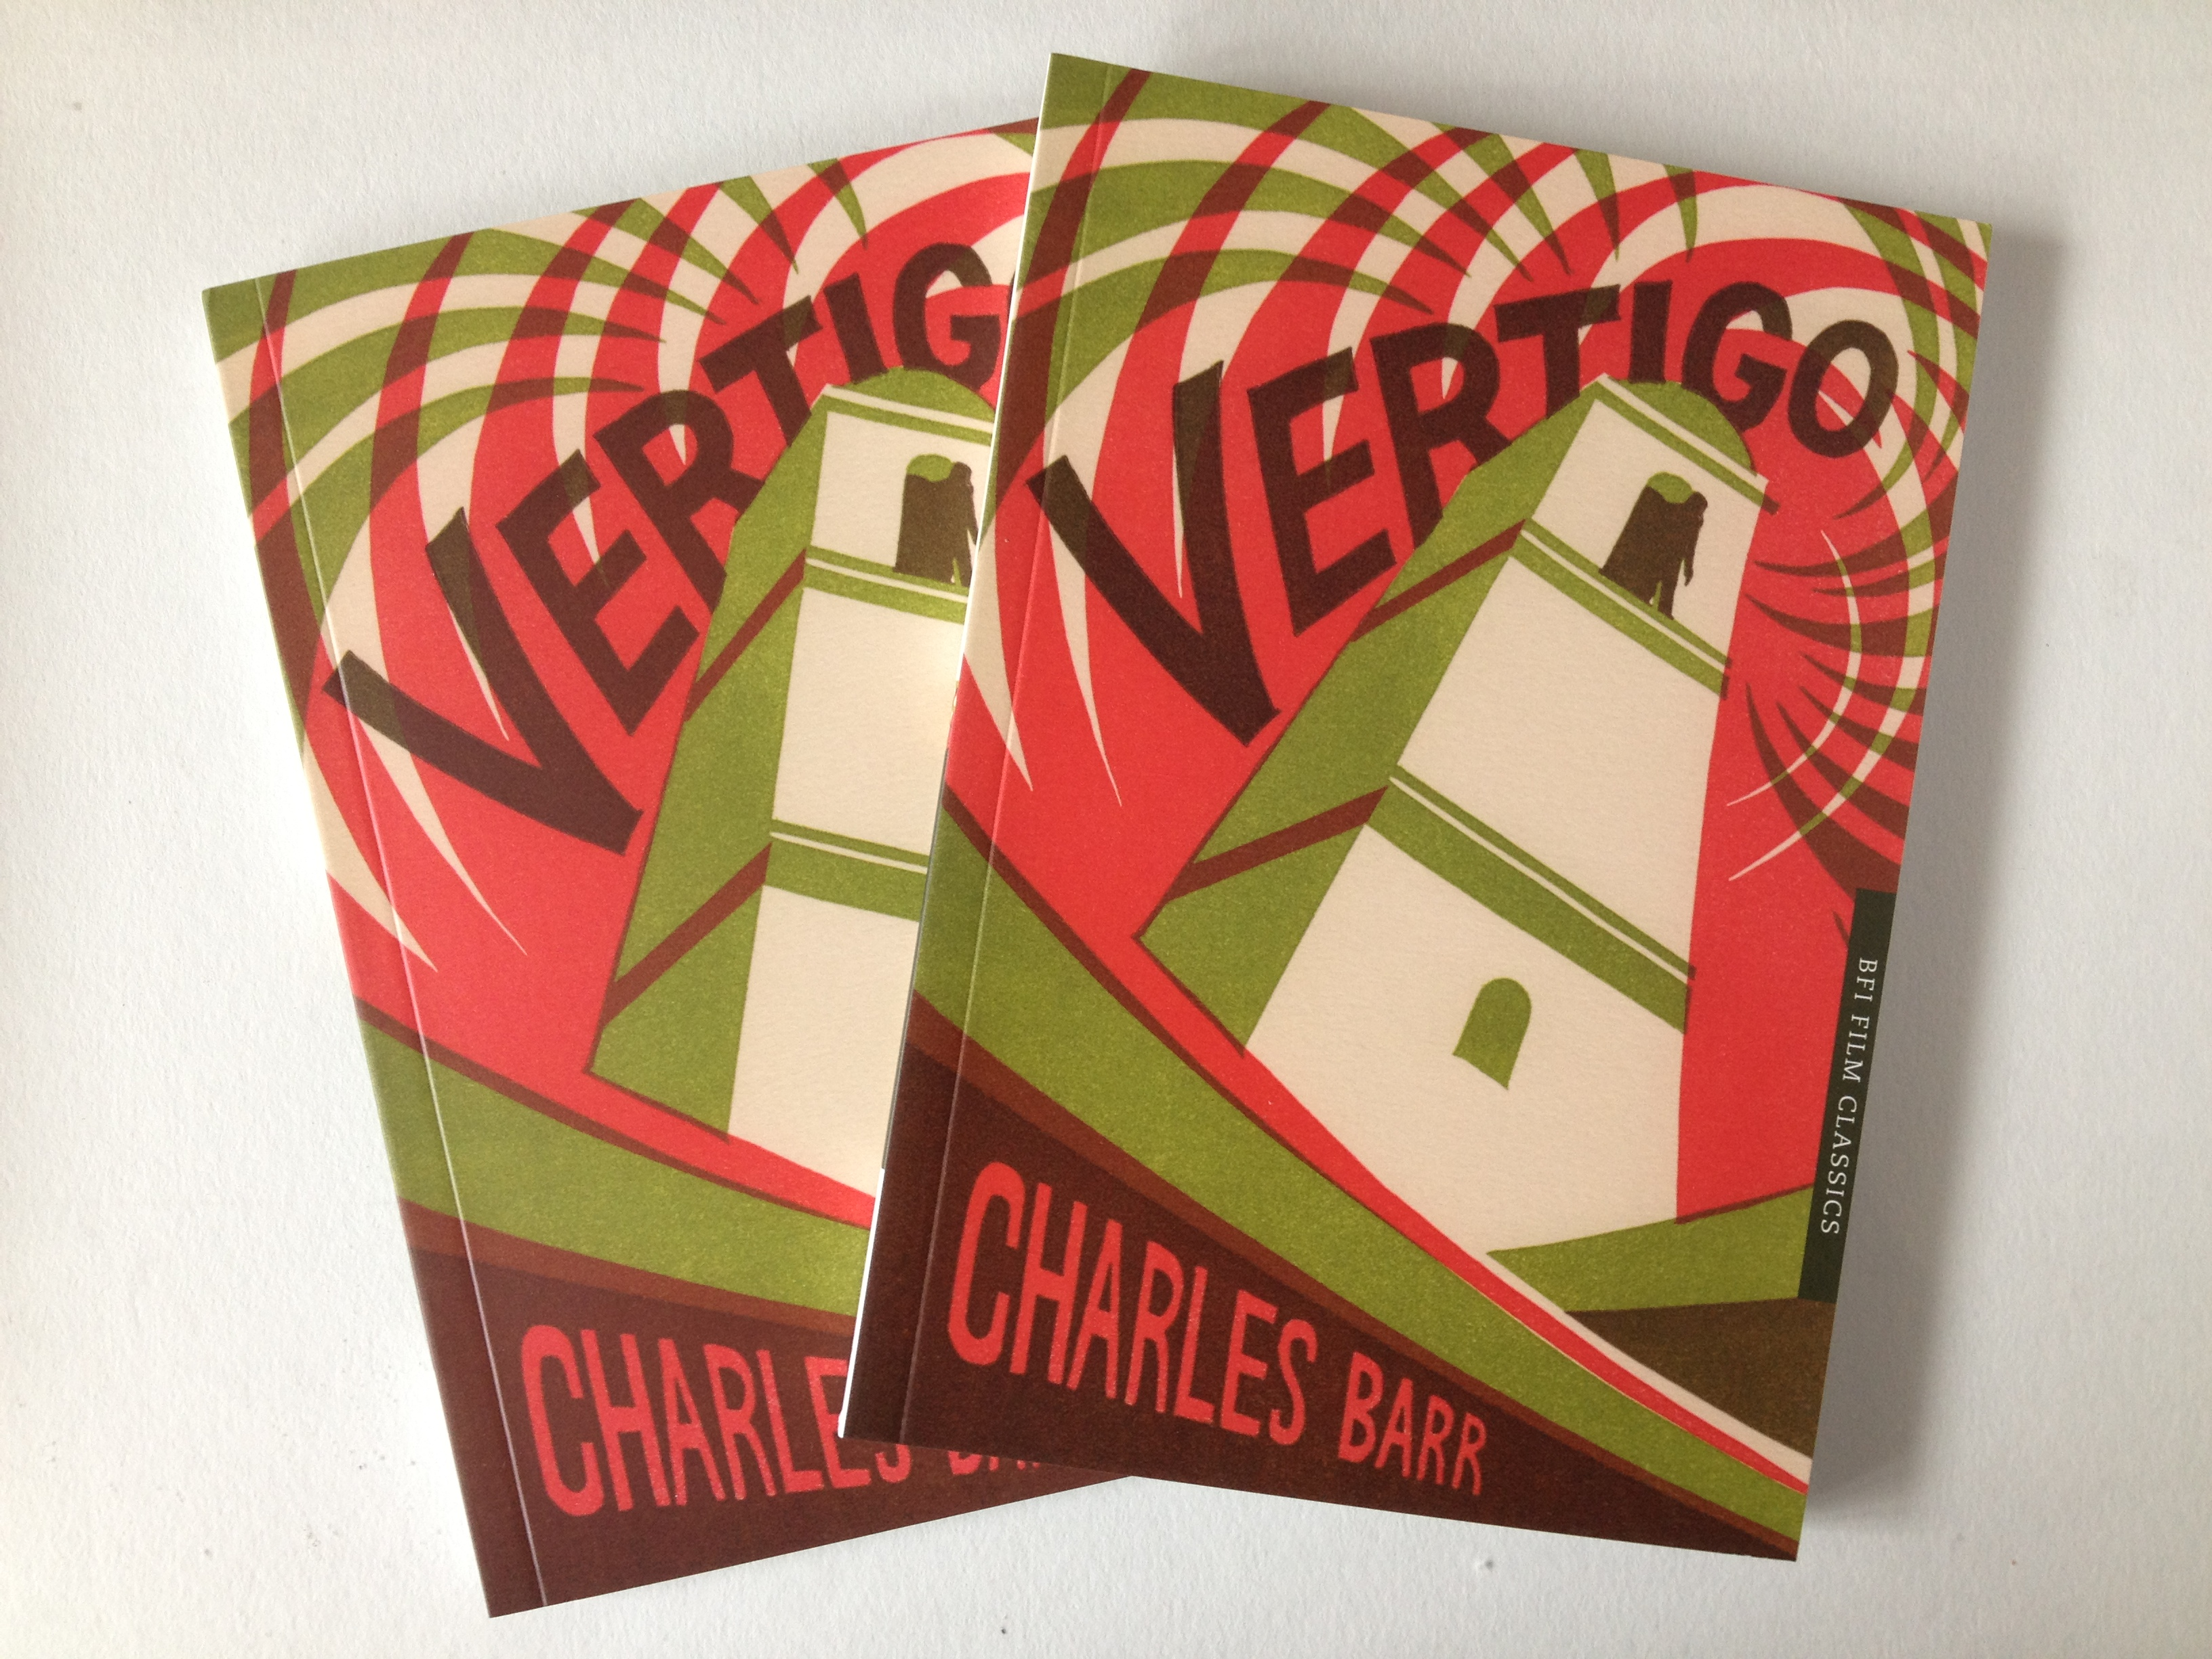 Hitchcocks Vertigo - Book cover design for BFI